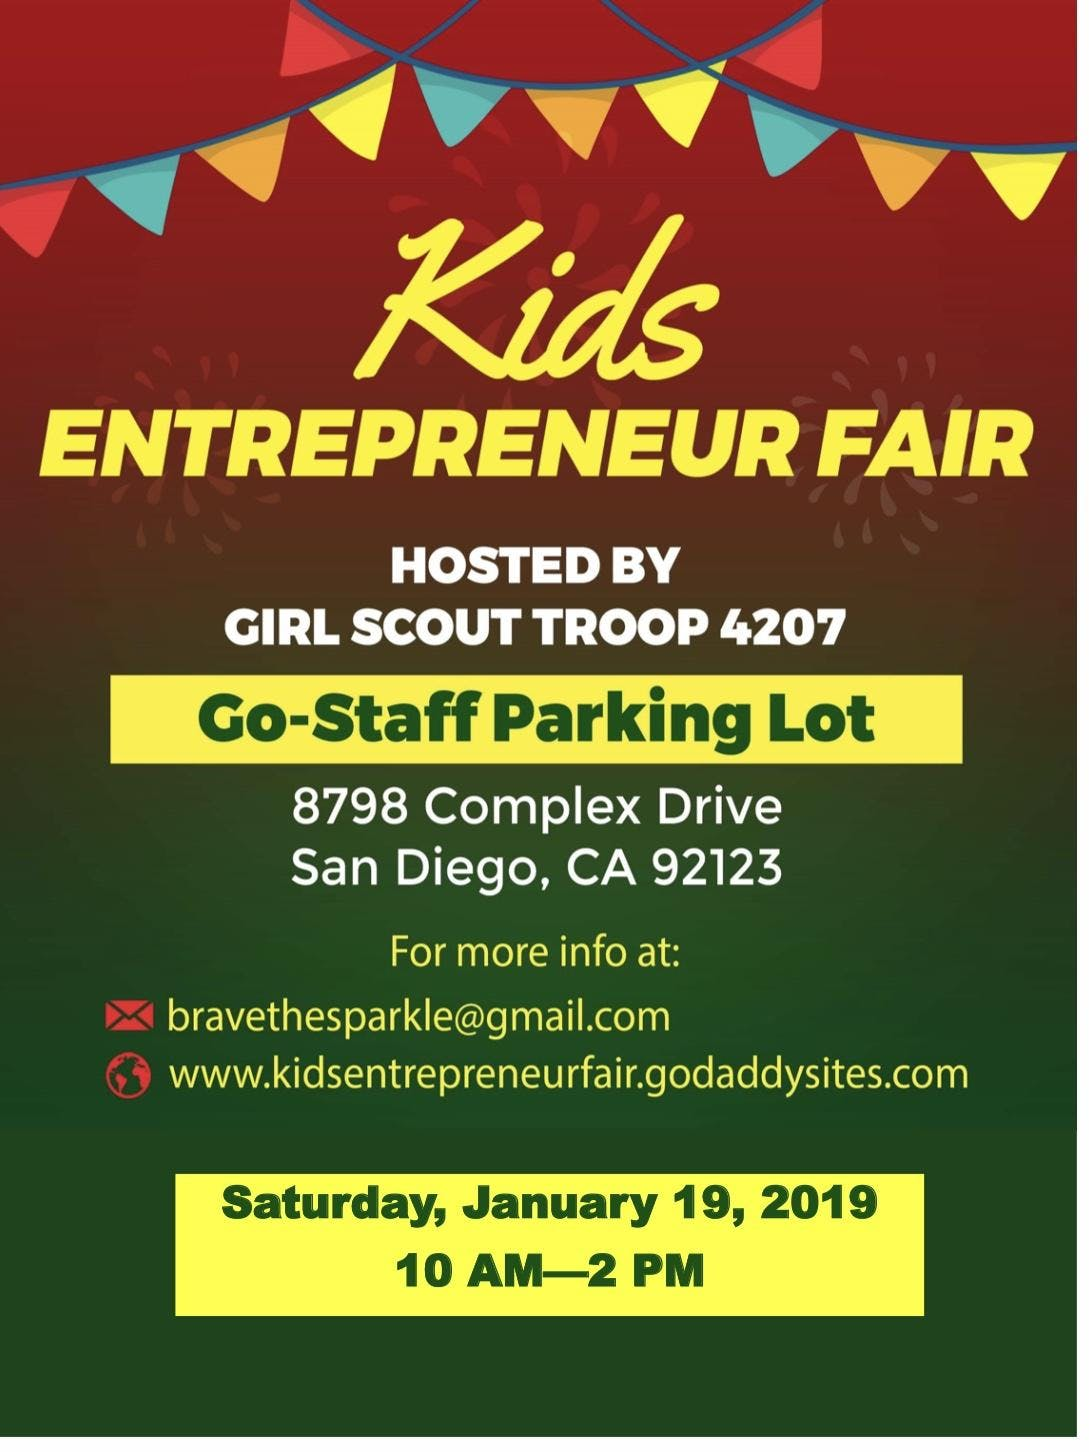 Kids Entrepreneur Fair